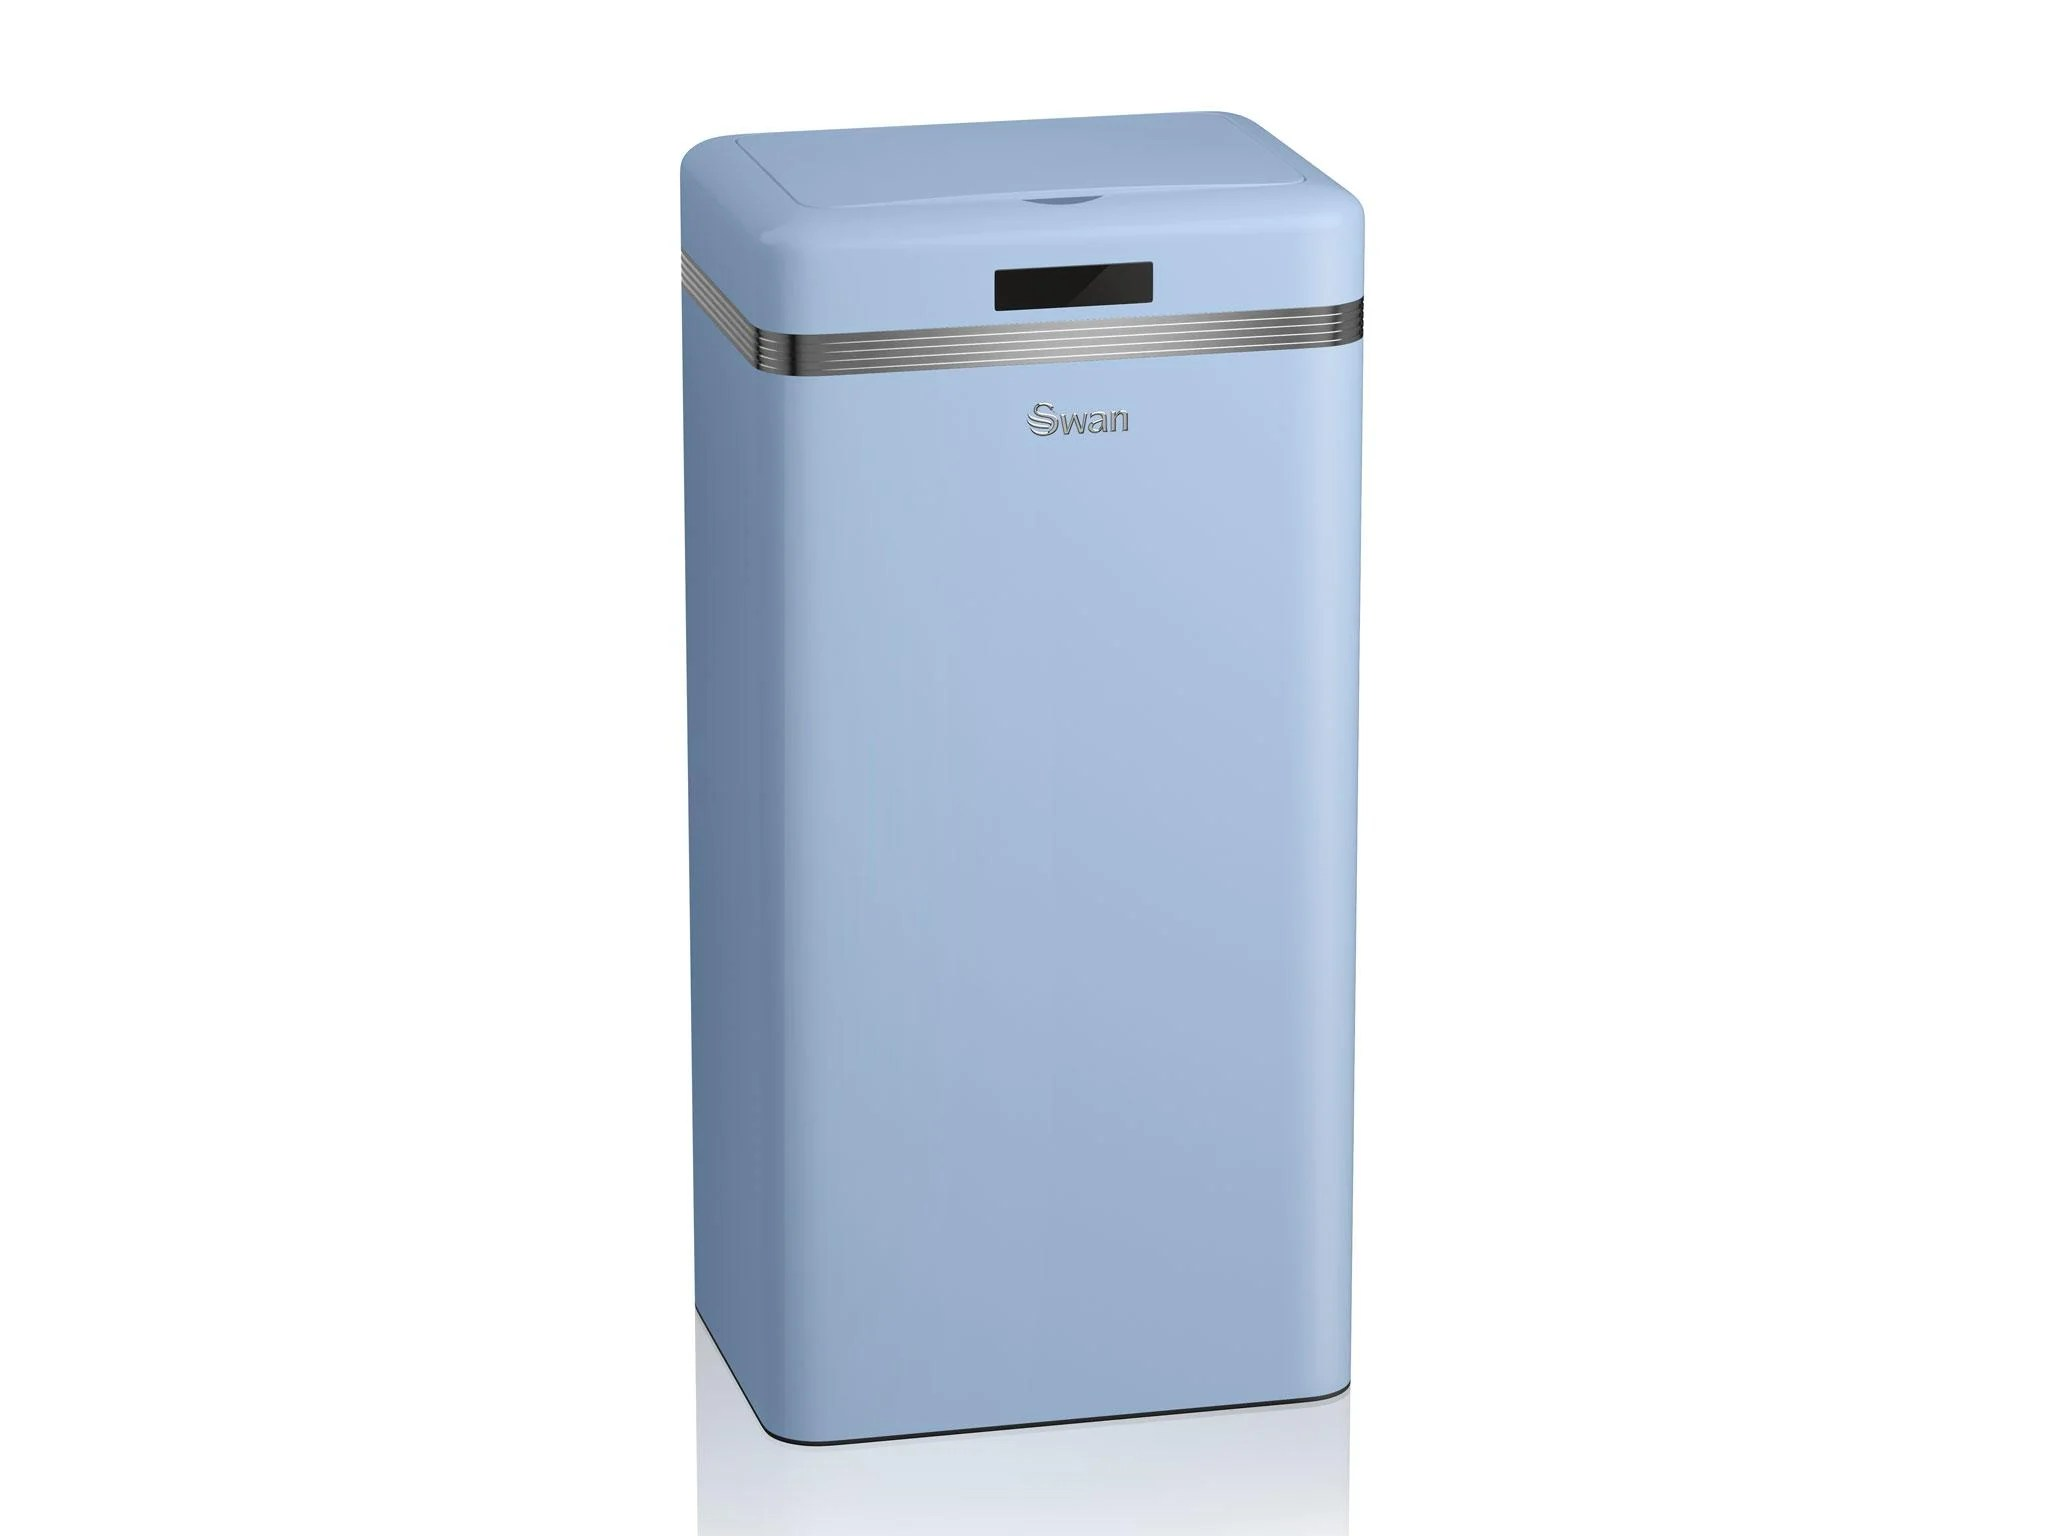 kitchen recycling bins grey modern cabinets 10 best the independent what s not to like about a sensor bin you merely have wave your hand or rubbish anywhere between 5 15cm away from and open sesame